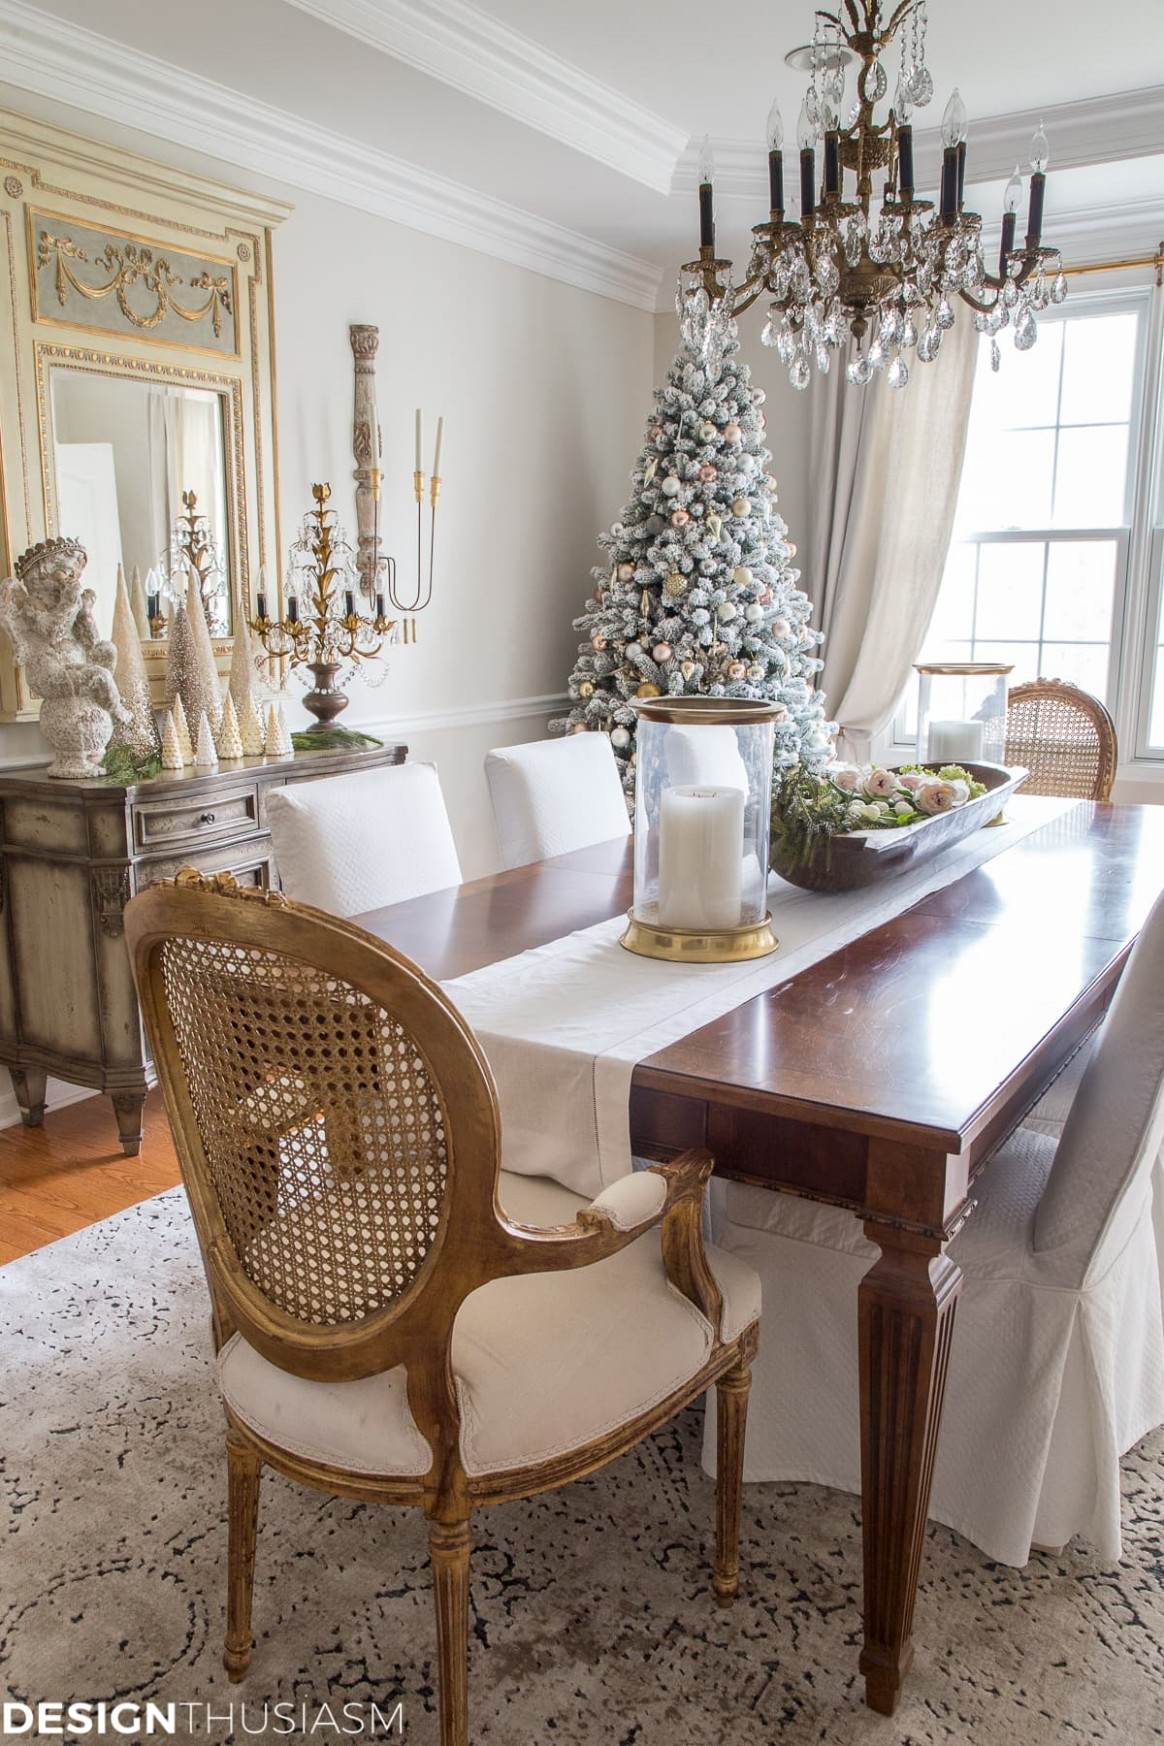 Elegant Holiday Decorating Ideas for the Dining Room - Dining Room Arrangement Ideas